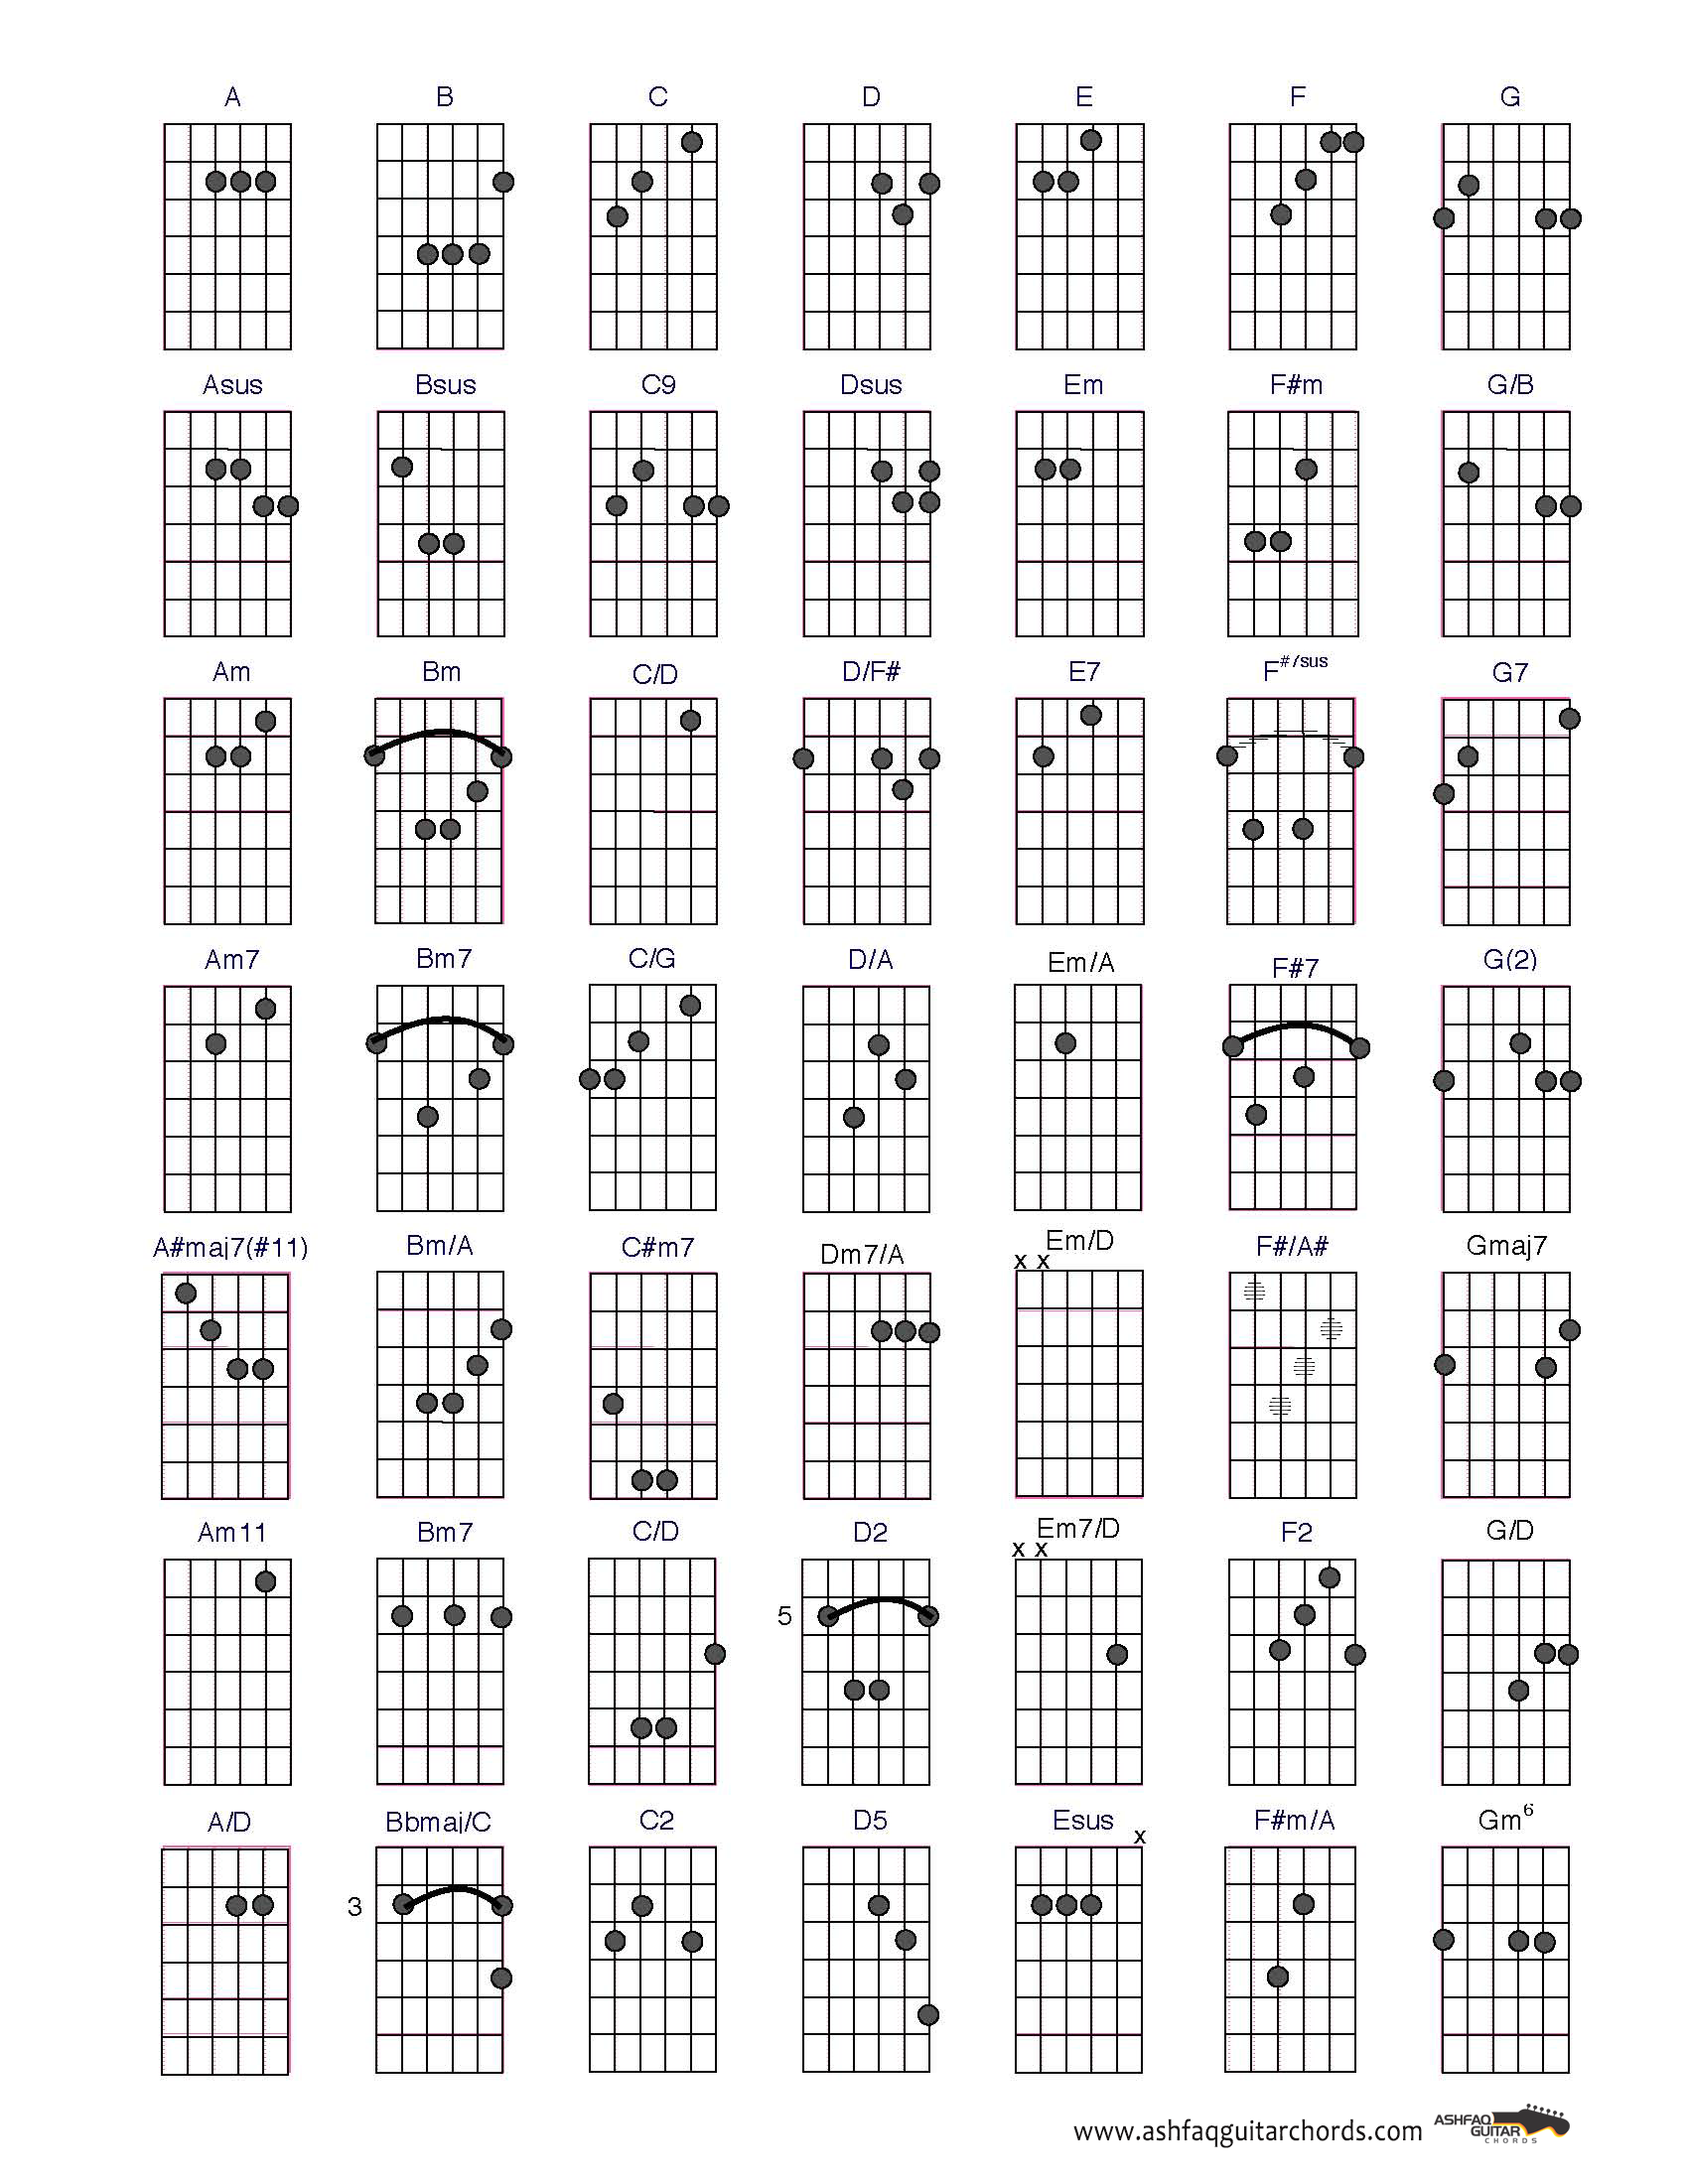 medium resolution of guitar chord chart for all the important chords you need to know to play any hindi song these are all the chords you will ever need